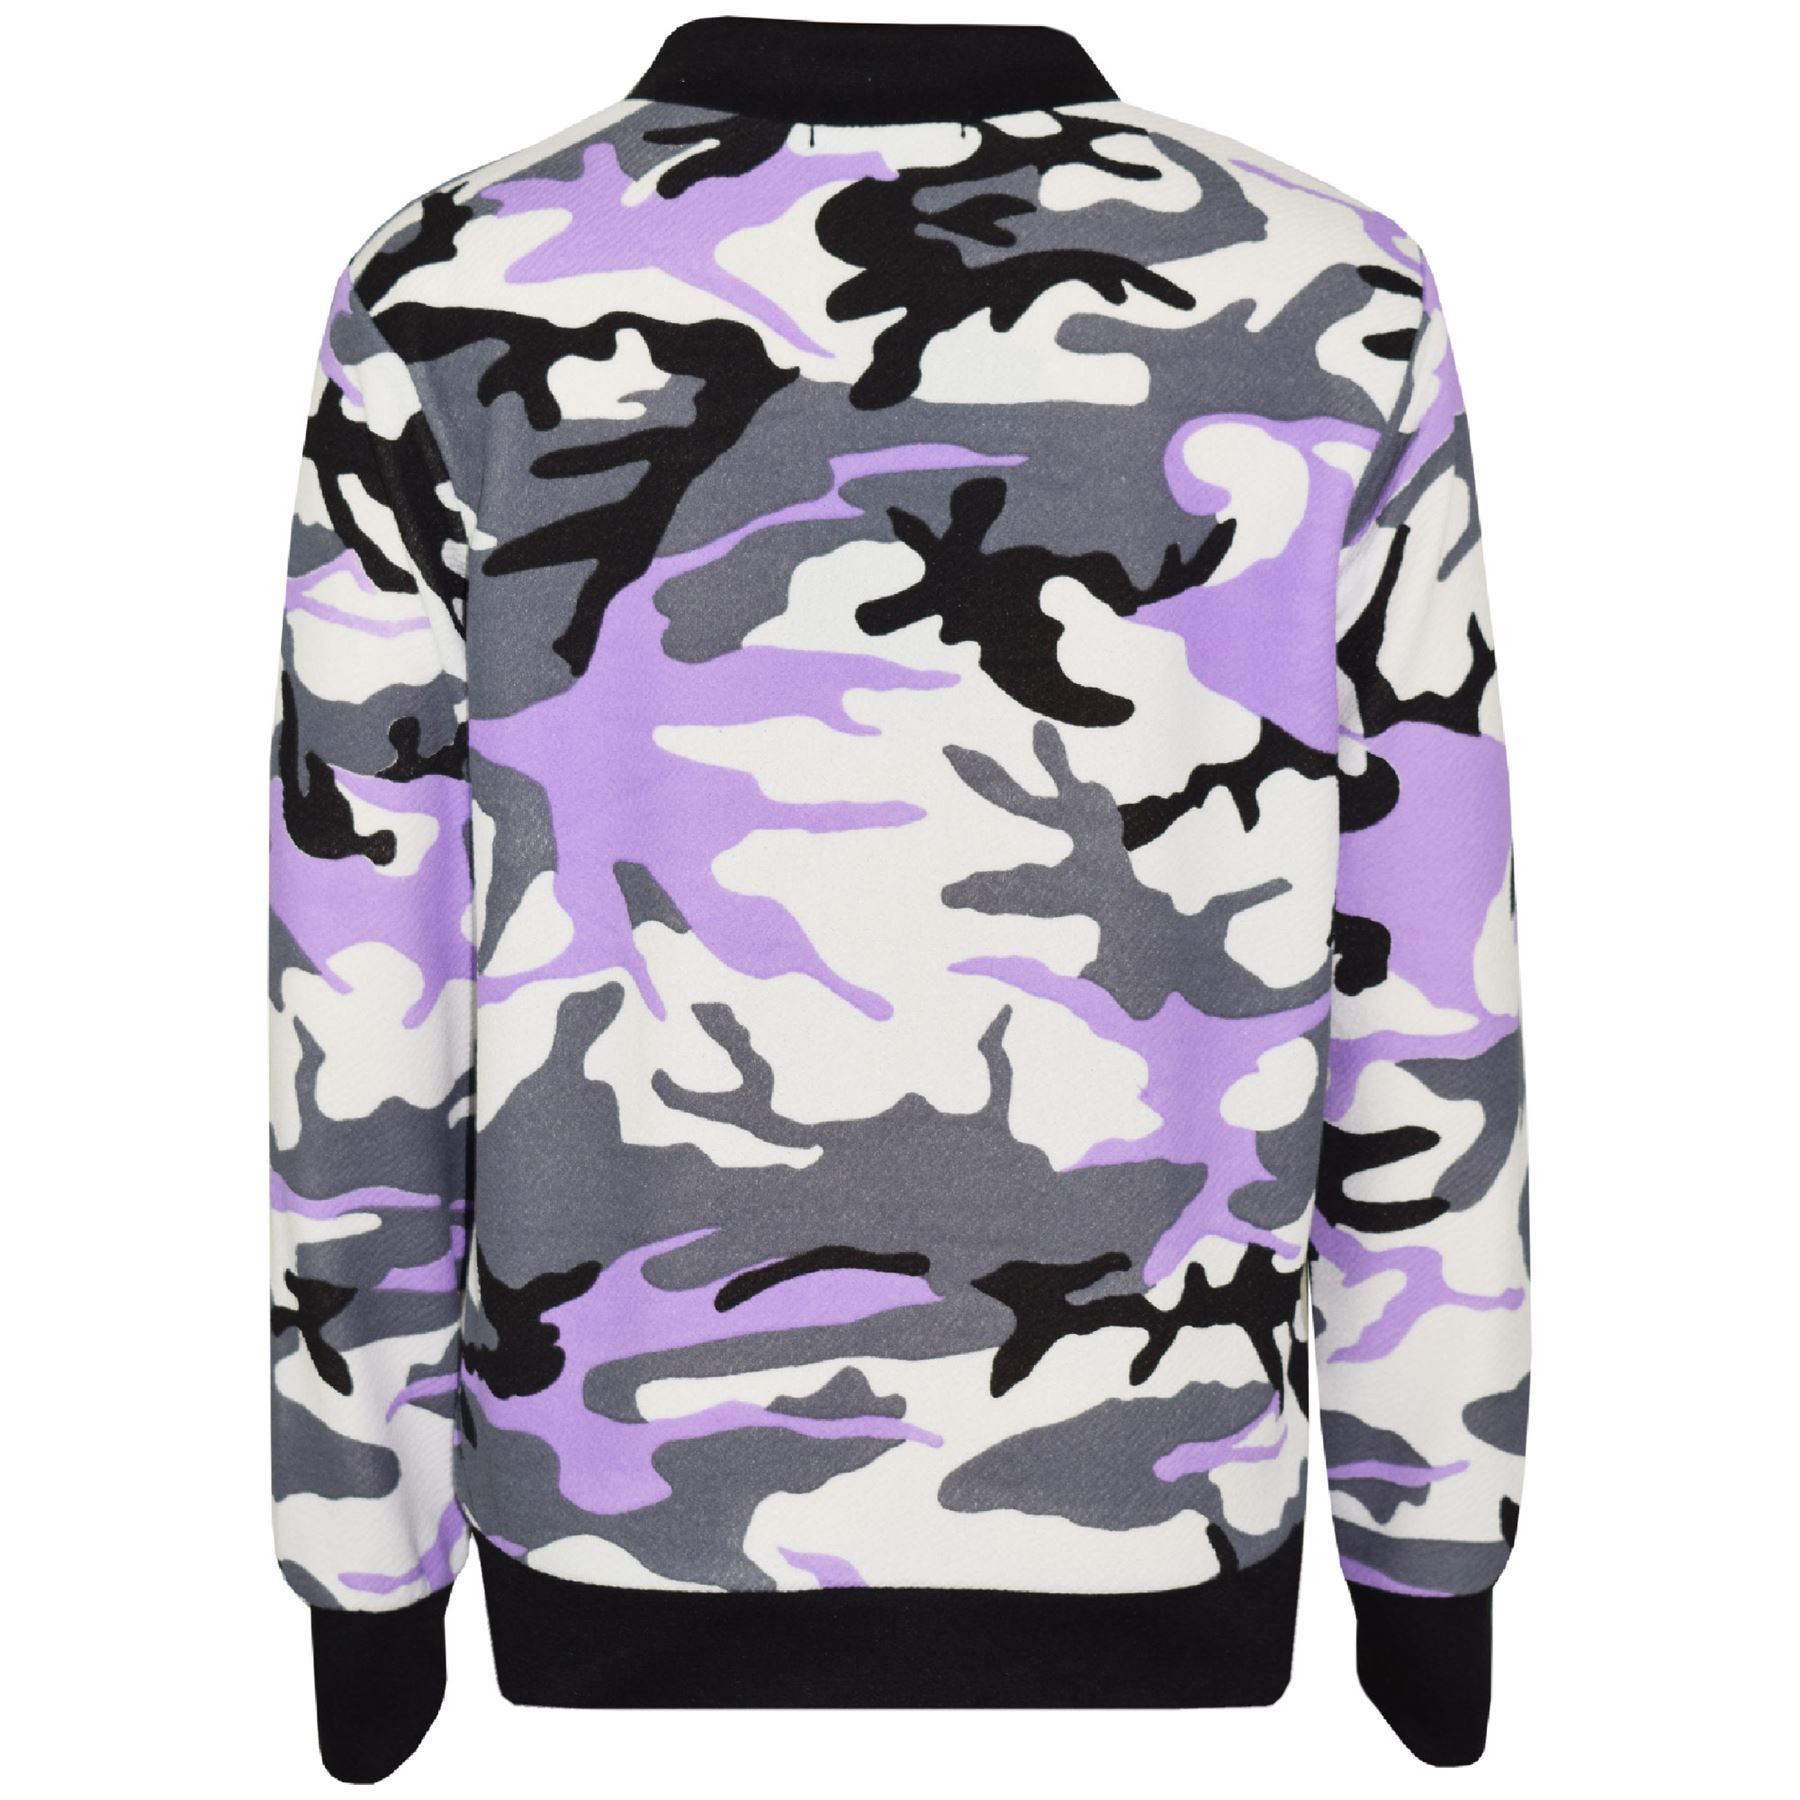 Kids-Girls-Camouflage-Print-Crop-Top-Legging-Jacket-Tracksuit-Age-7-13-Years miniatuur 9